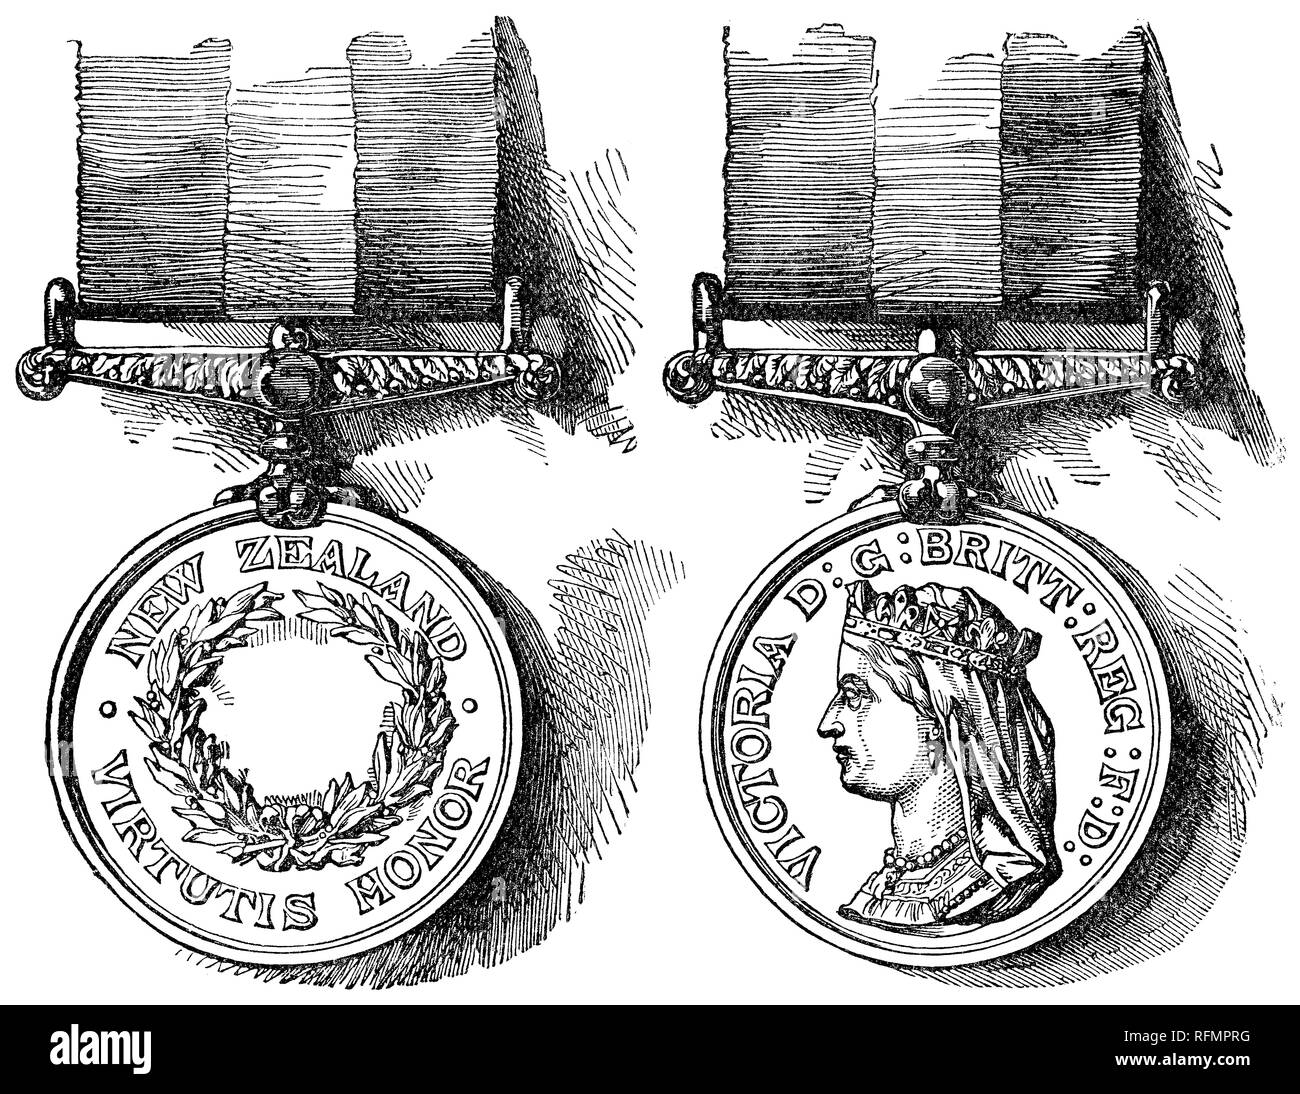 1888 Victorian engraving of the obverse and reverse sides of the New Zealand Medal, awarded for service during the New Zealand Wars ( or Maori Wars, Land Wars) of 1845-47 and 1860-66. - Stock Image